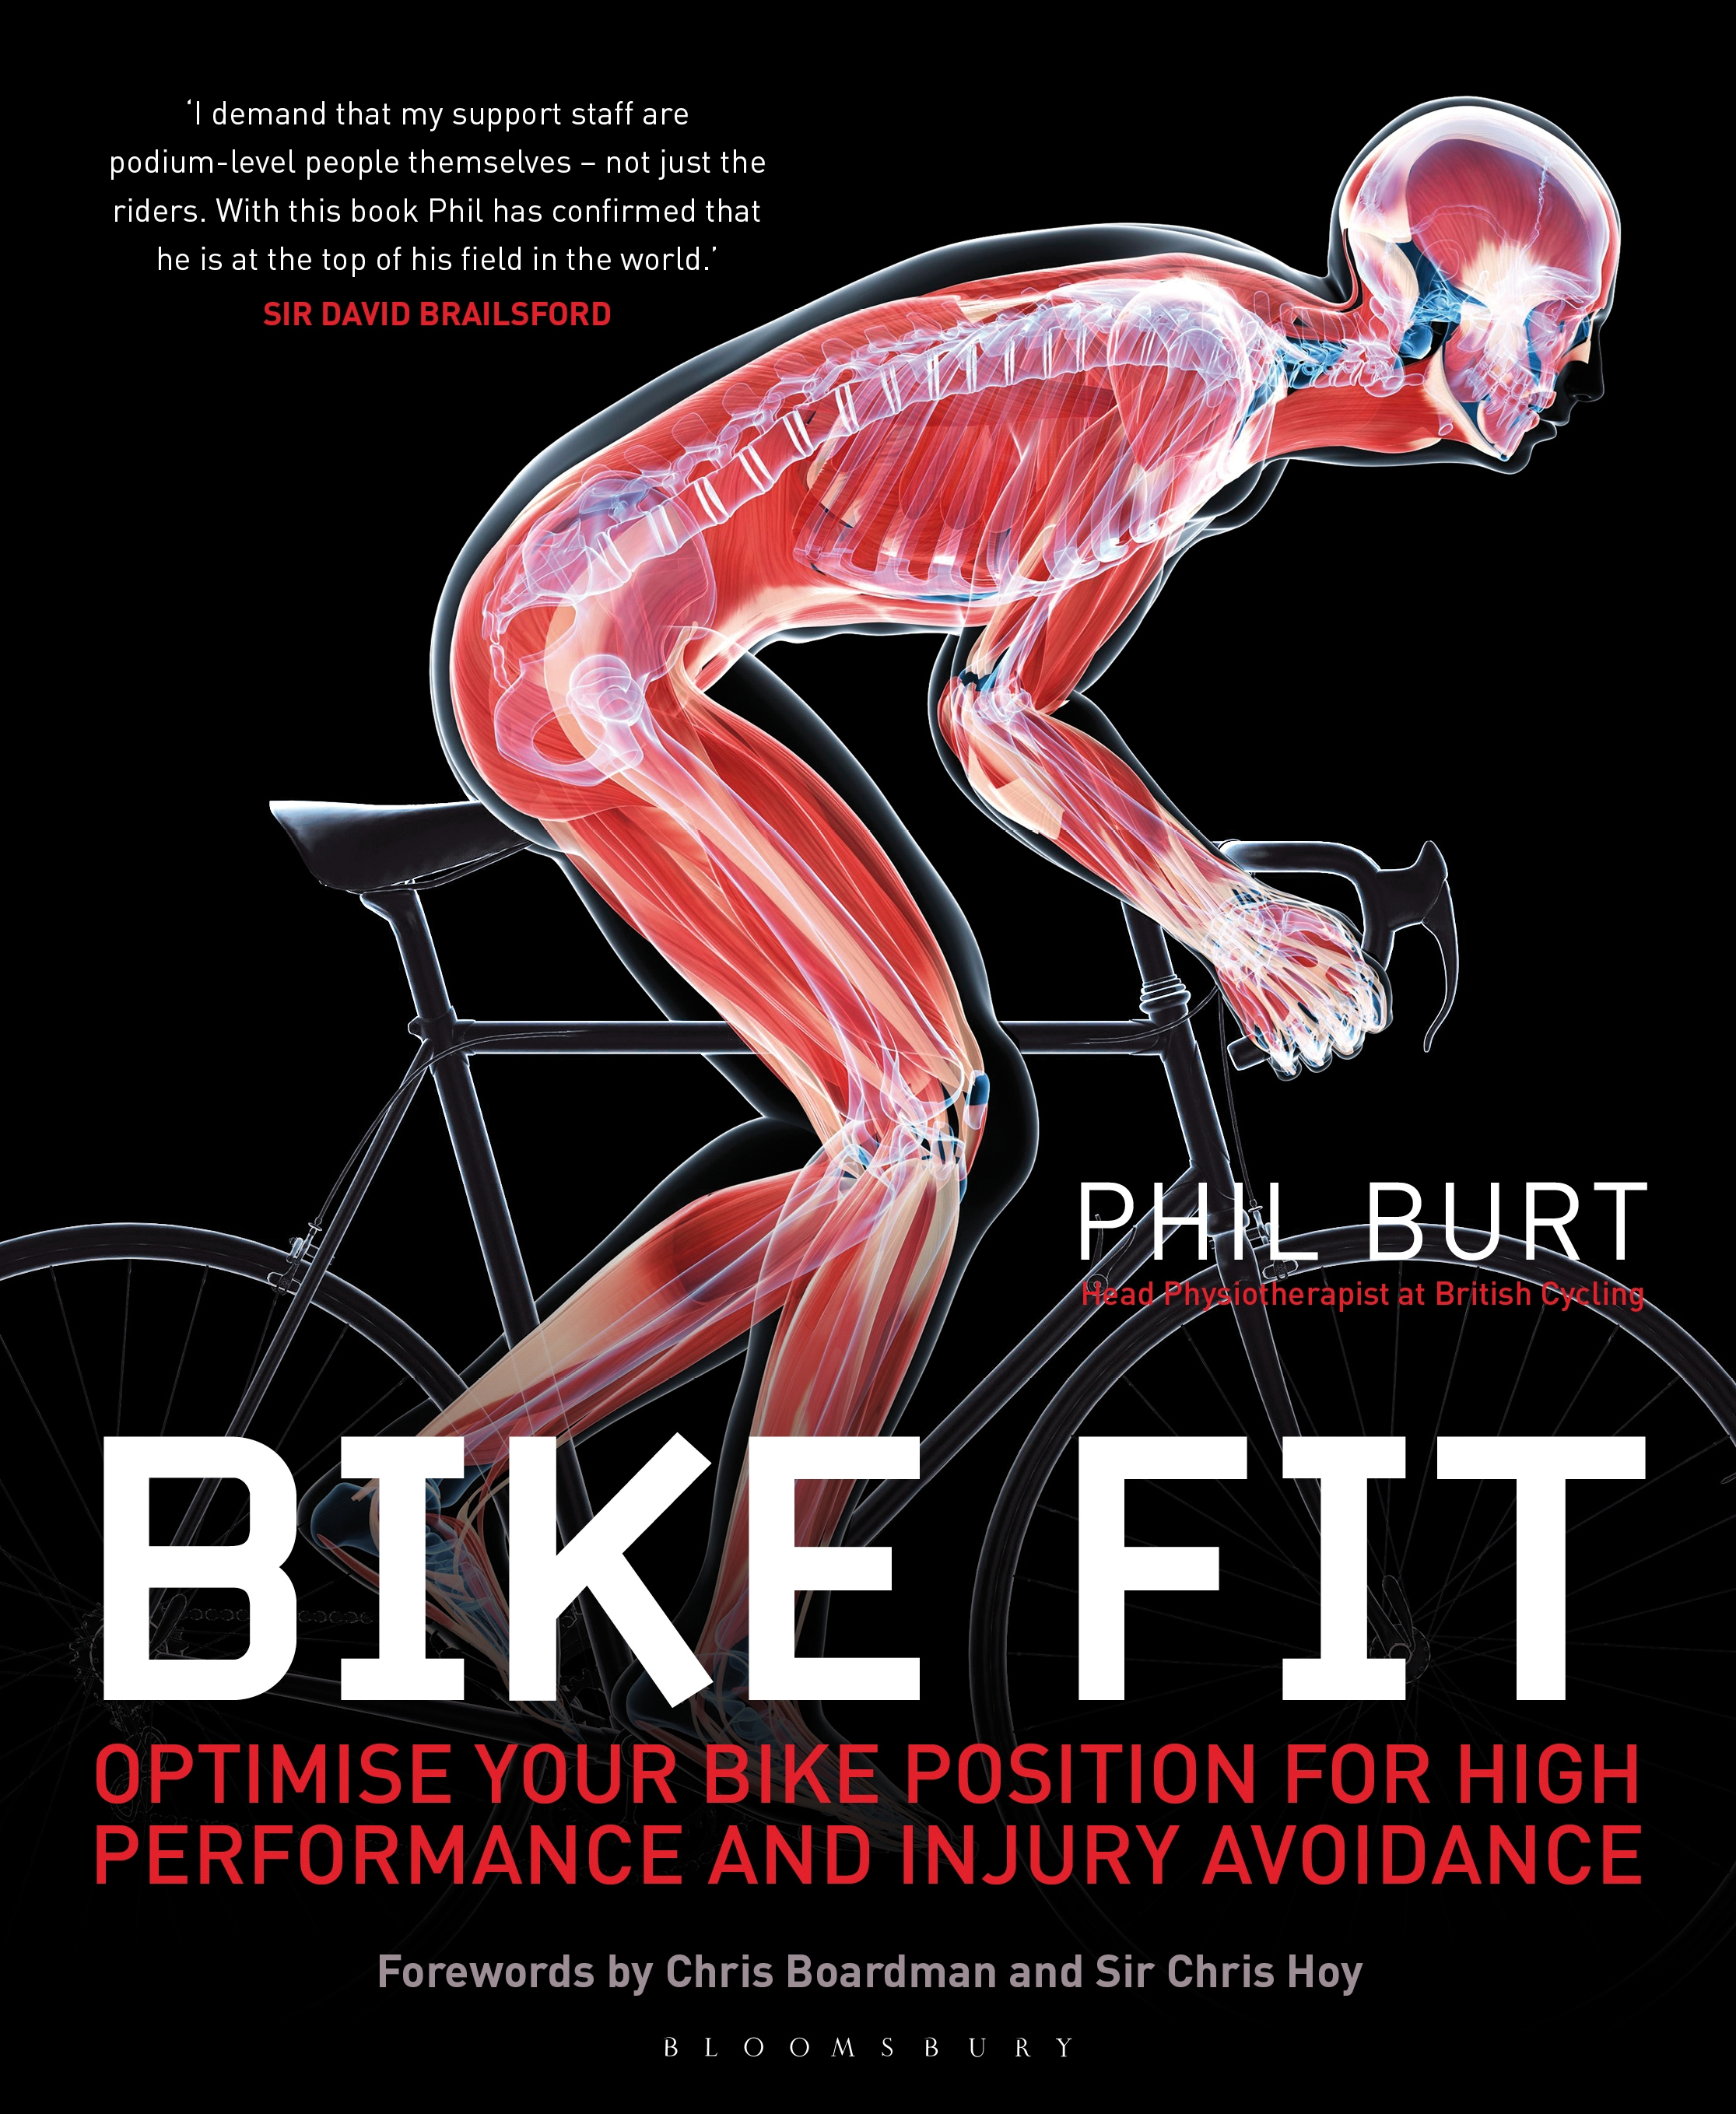 Bike Fit Optimise Your Bike Position for High Performance and Injury Avoidance